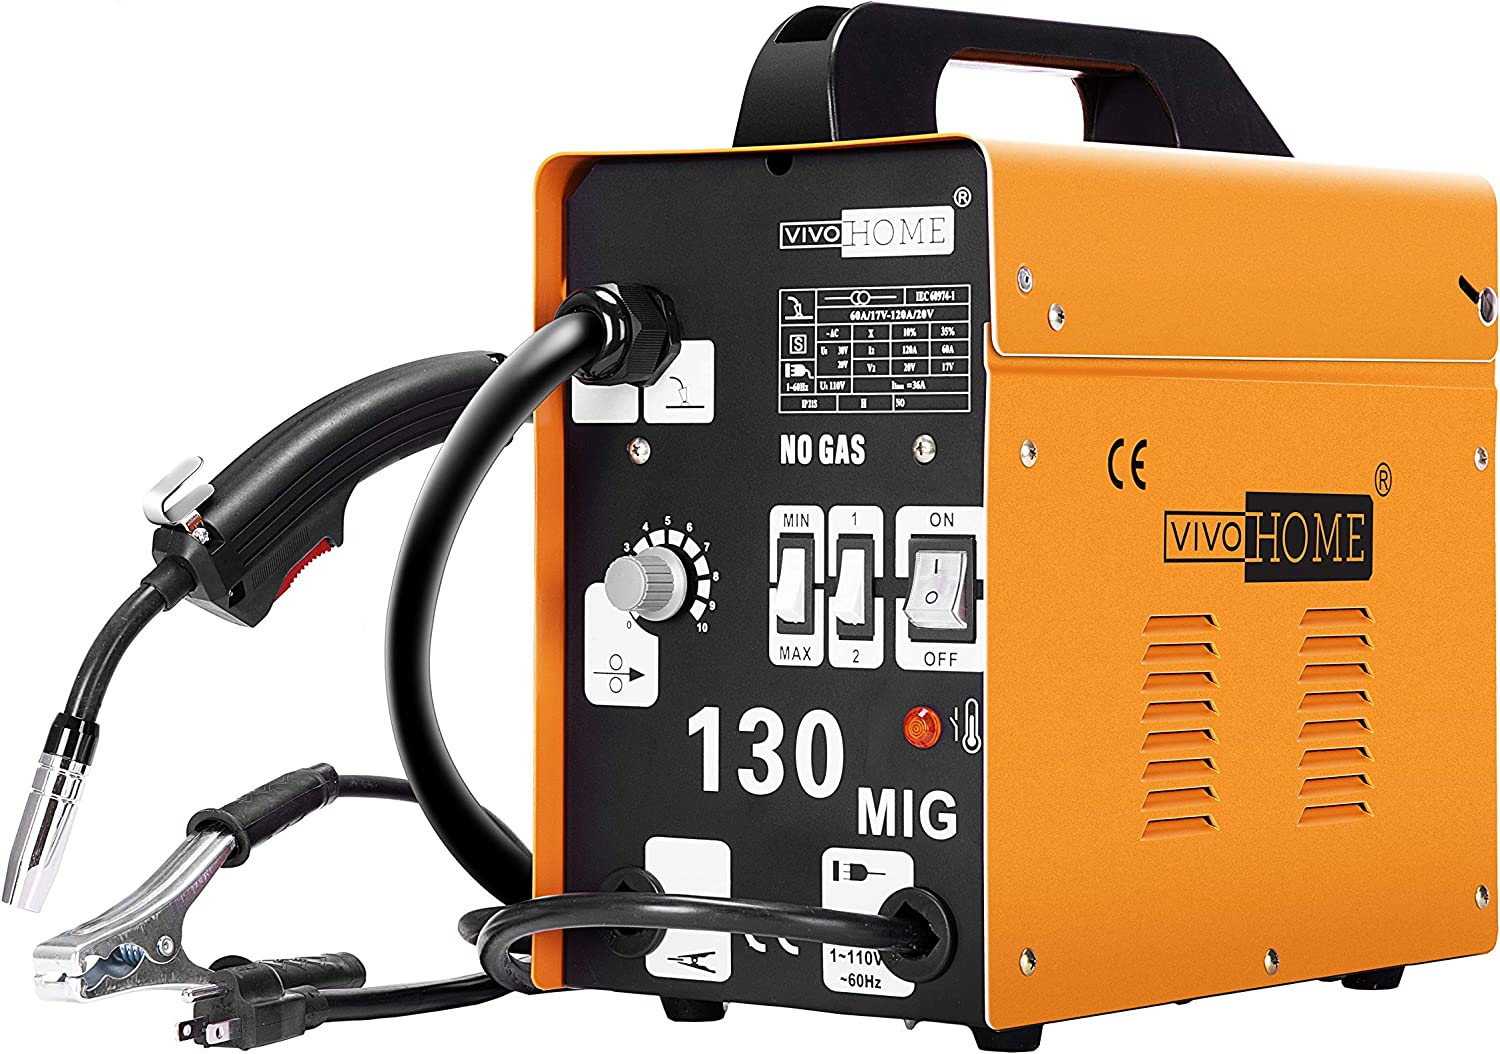 Best 110v Mig Welder (MIG, TIG, Stick) - Our 5 Reviews for 2020 3